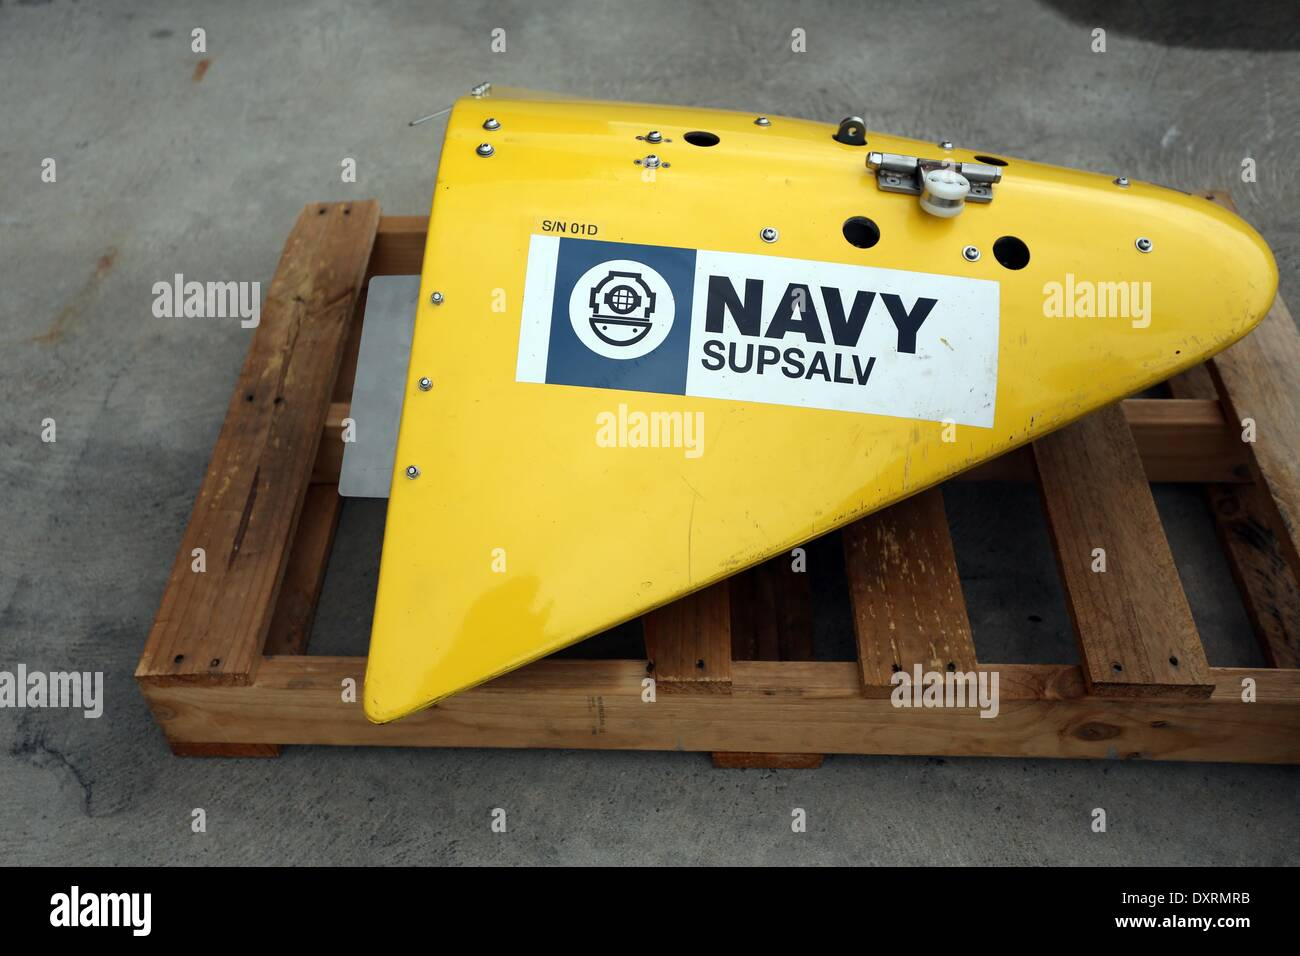 Perth, Australia . 30th Mar, 2014. A sensor for the towed pinger locator provided by U.S. Navy is seen before being loaded to Australian Defence Vessel Ocean Shield and used in searching for the missing Malaysia Airlines Flight MH370, at HMAS Stirling naval base near Perth, Australia, March 30, 2014. Credit:  Xinhua/Alamy Live News - Stock Image